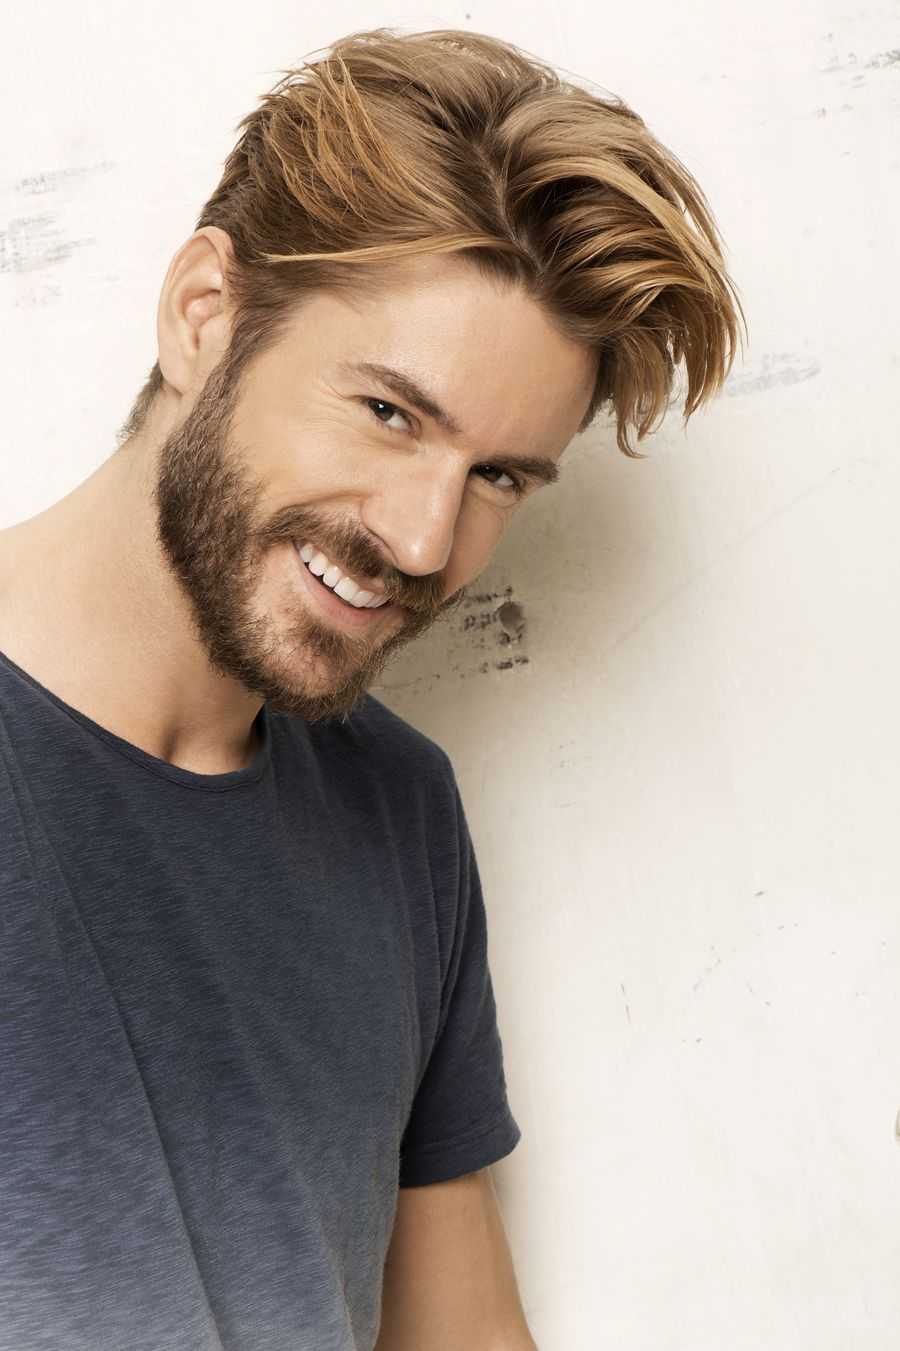 top 10 beard style trends for men in the world | hair